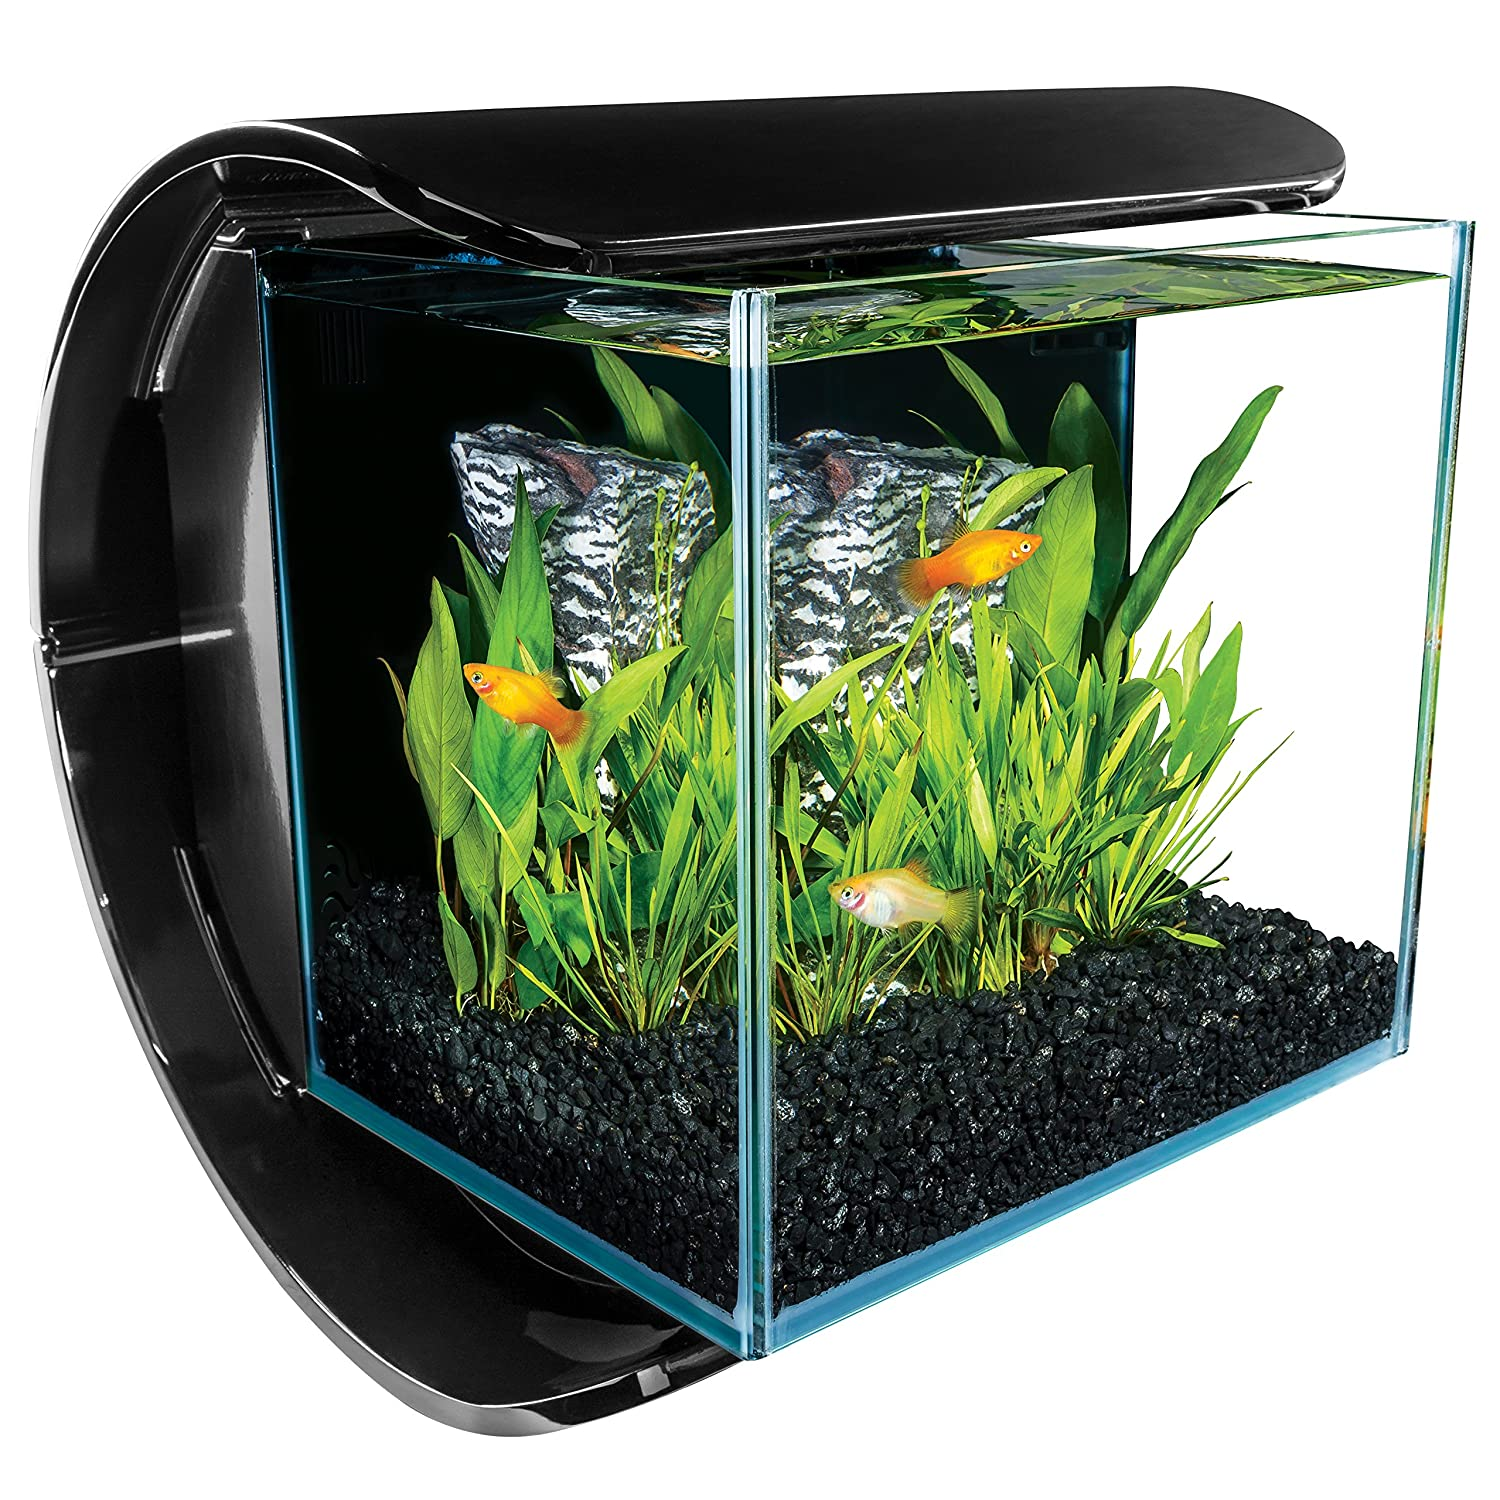 Marineland Silhouette Square Glass Aquarium Kit, 3-Gallon